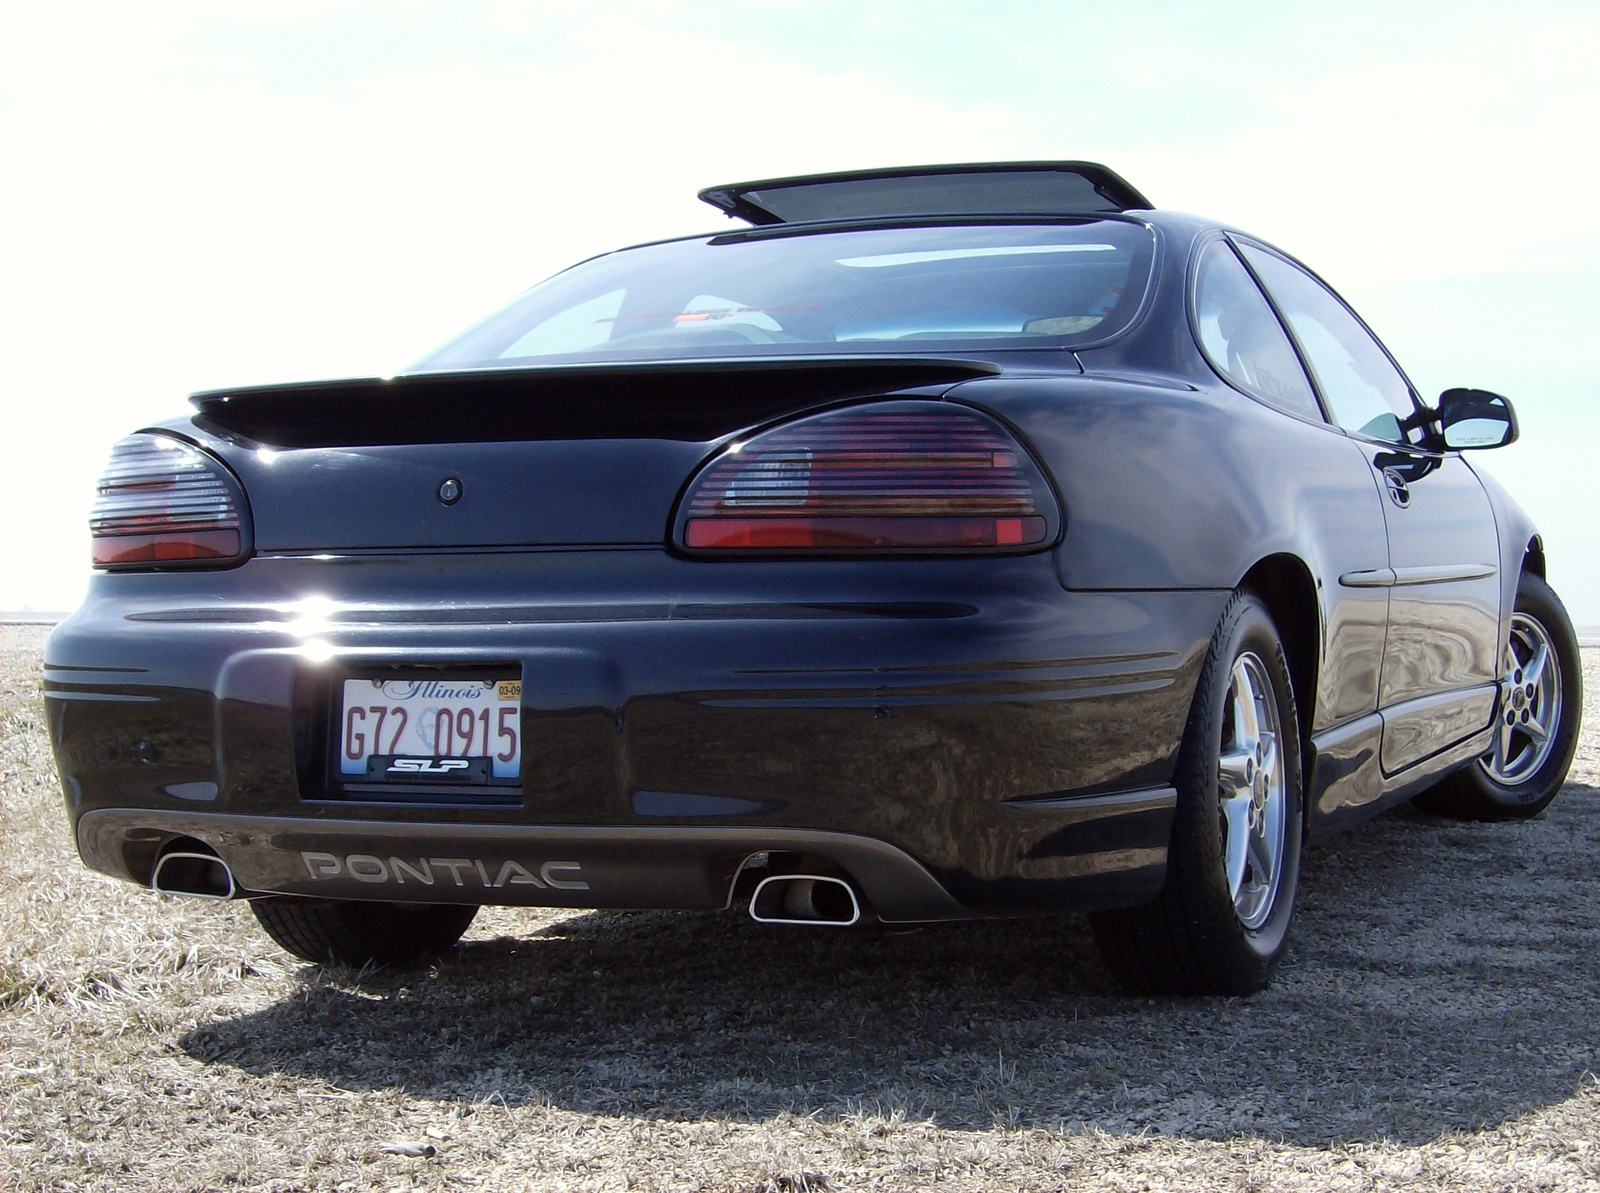 2000 Pontiac Grand Prix GT Coupe picture, exterior